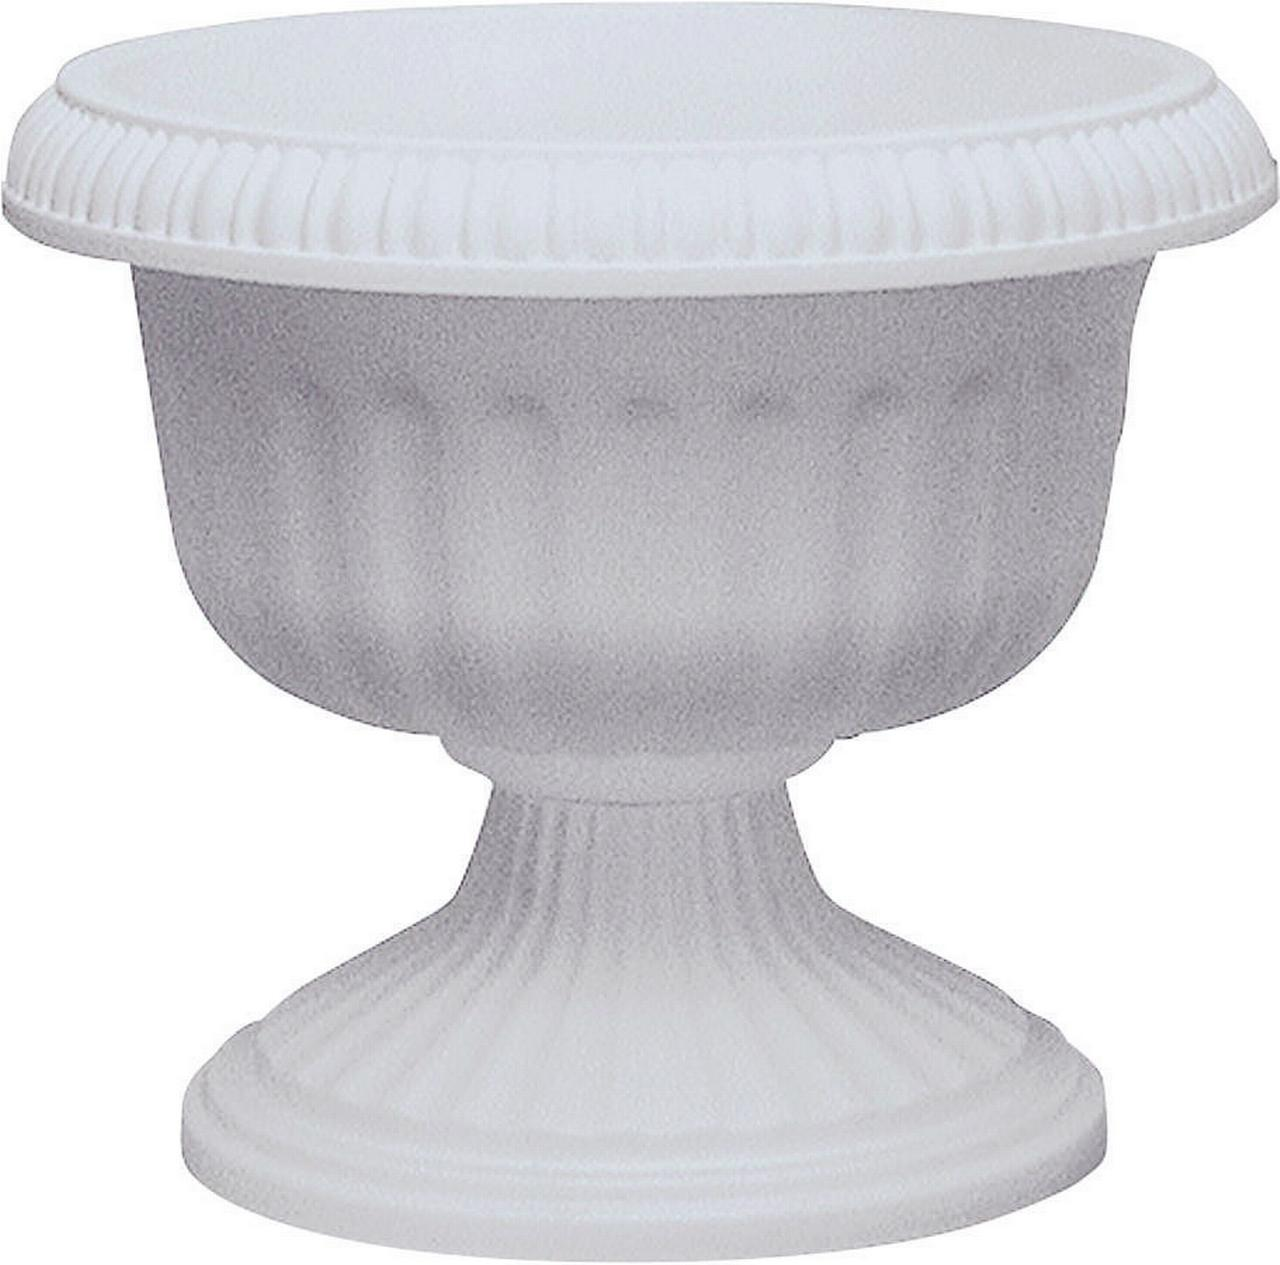 Southern Patio, Dynamic Design UR1212WH Grecian Style Urn Planter, 12 In  Dia X 11.88